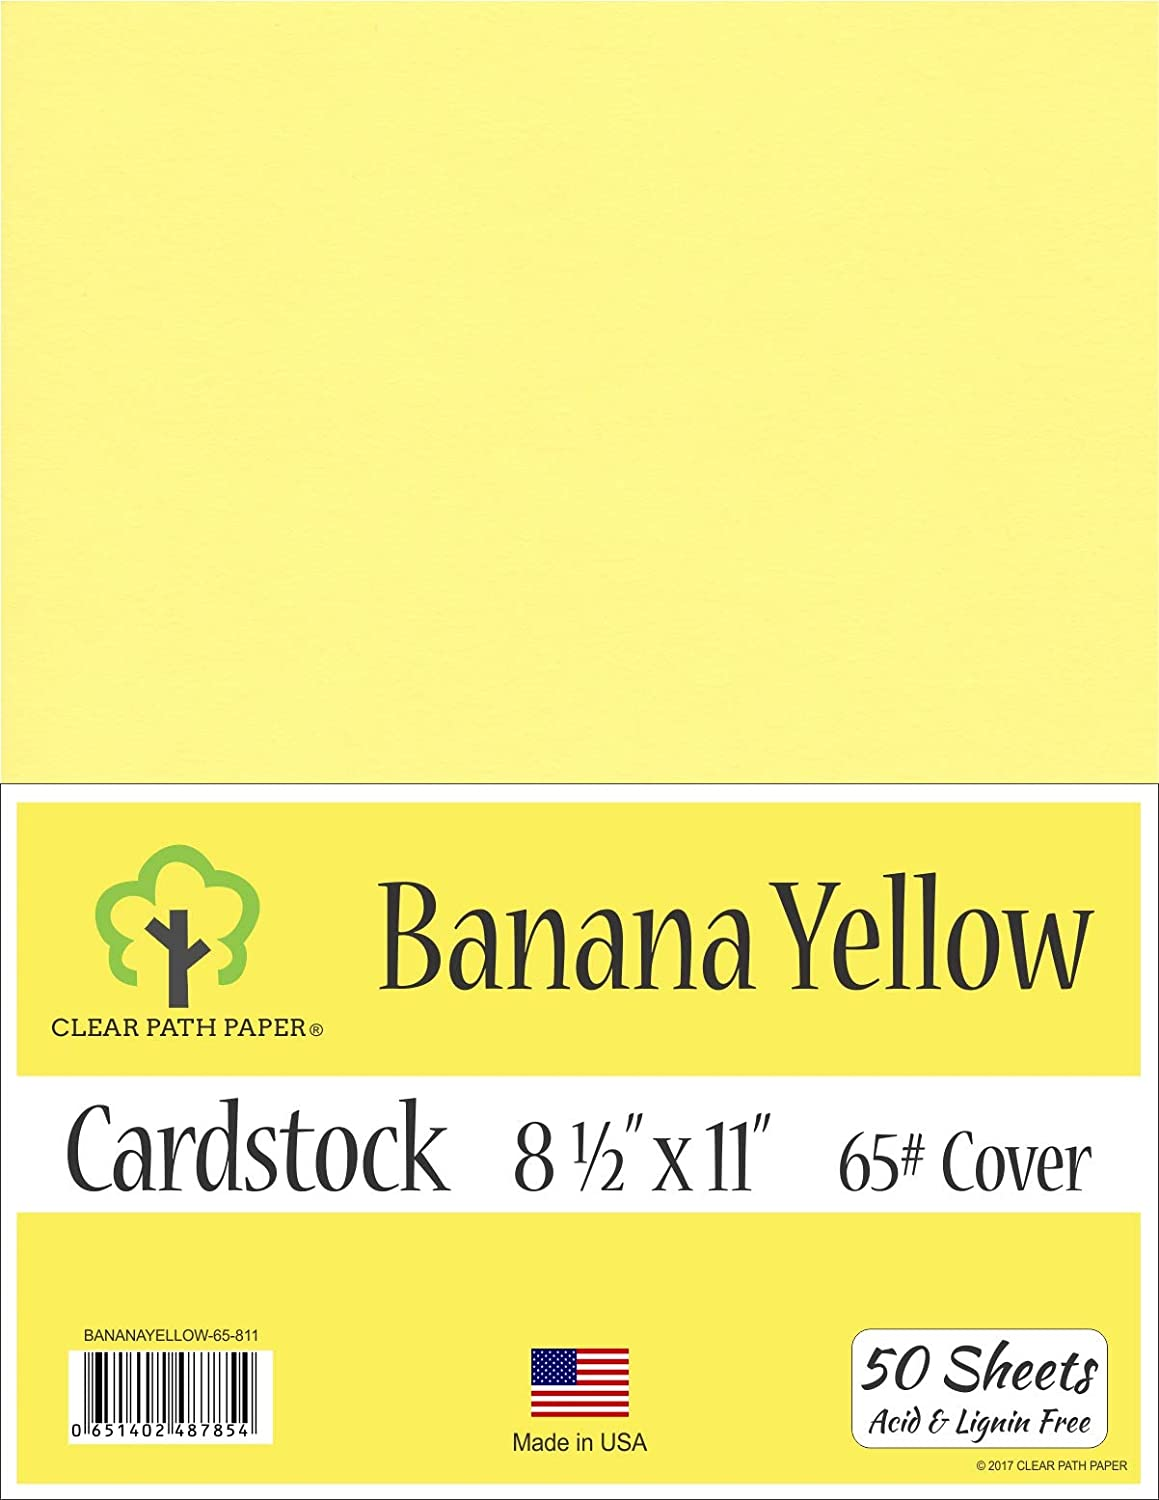 50 Sheets Banana Yellow Cardstock 8.5 x 11 inch 65Lb Cover